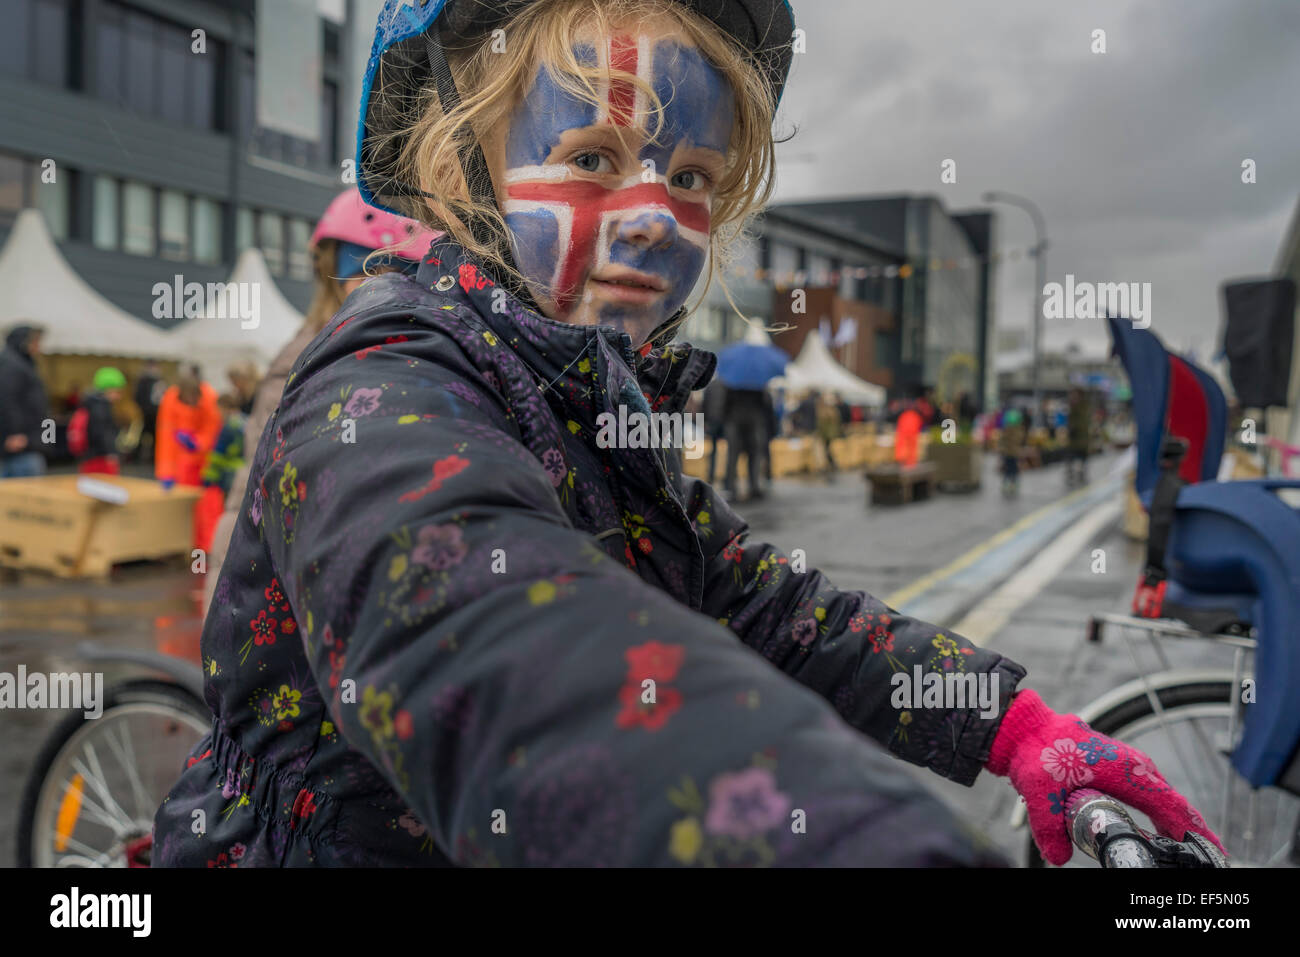 Girl with her face painted with the Icelandic flag, summer festival, Reykjavik, Iceland - Stock Image